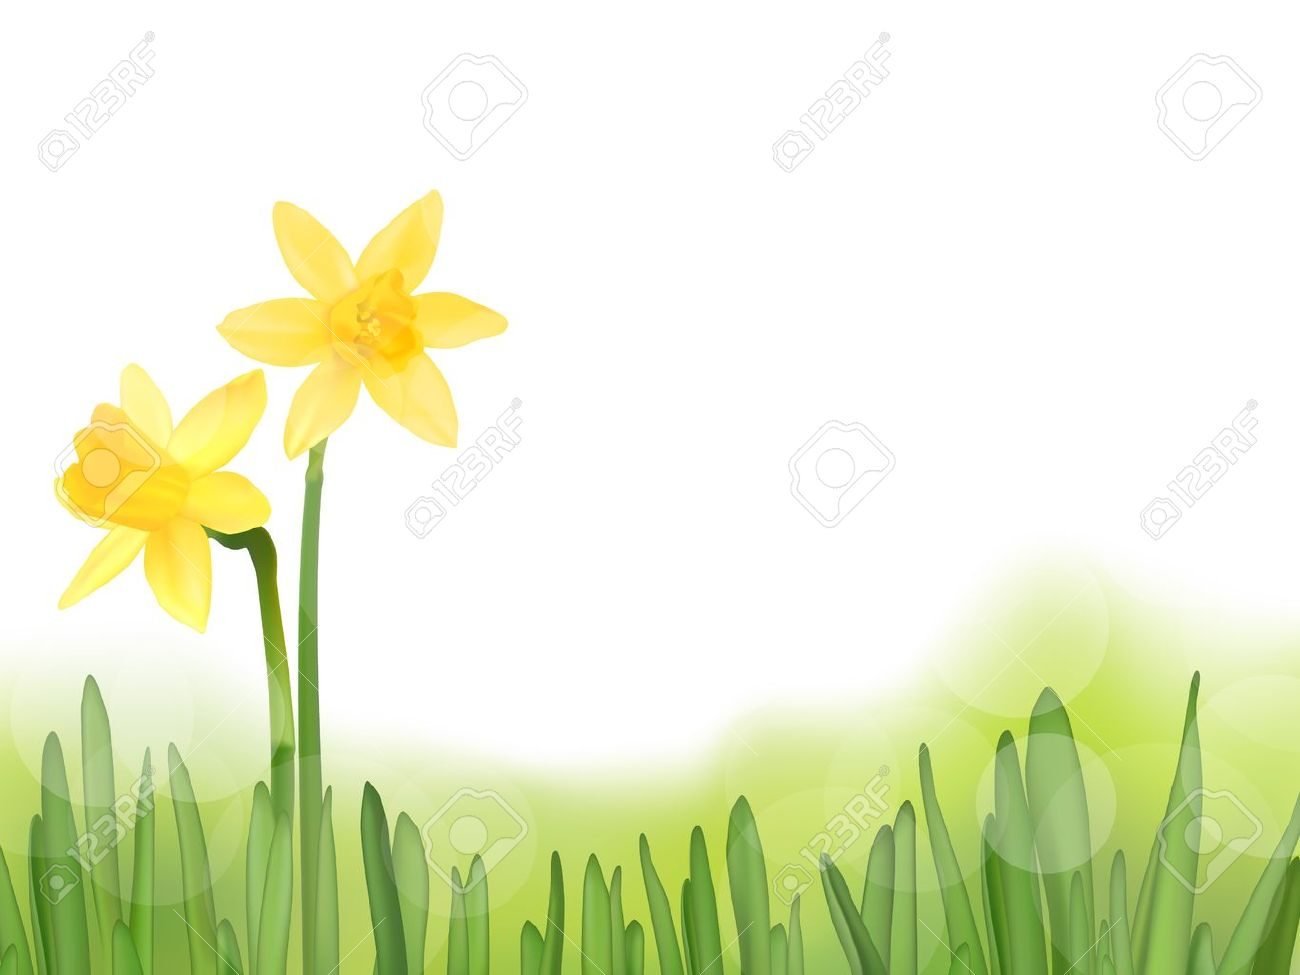 Field Of Daffodils Clipart - Floral delivery